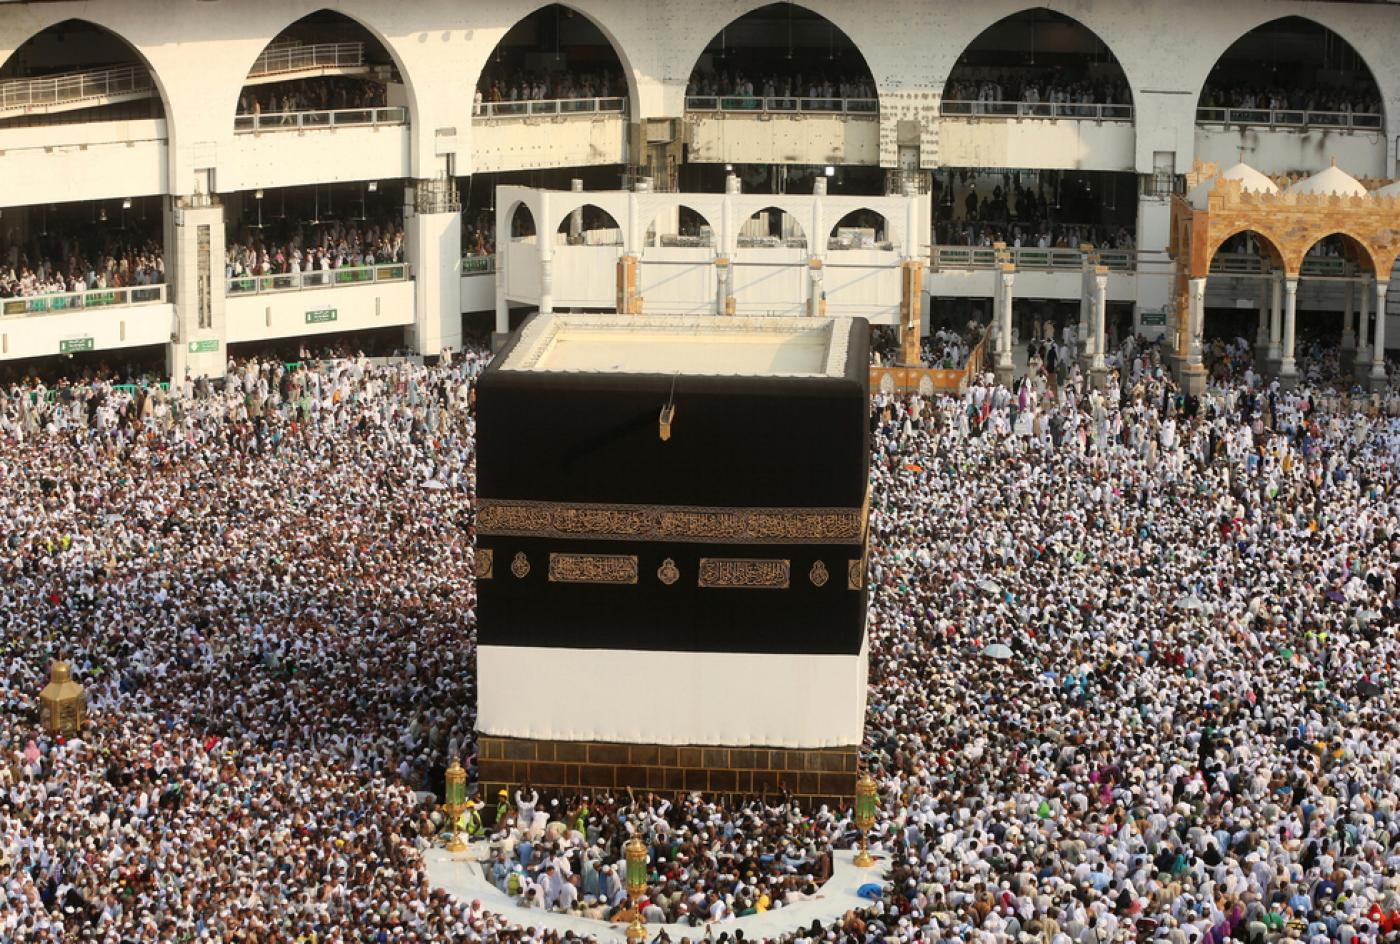 Pilgrims gather for the Hajj at Mecca in 2016 (Reuters)